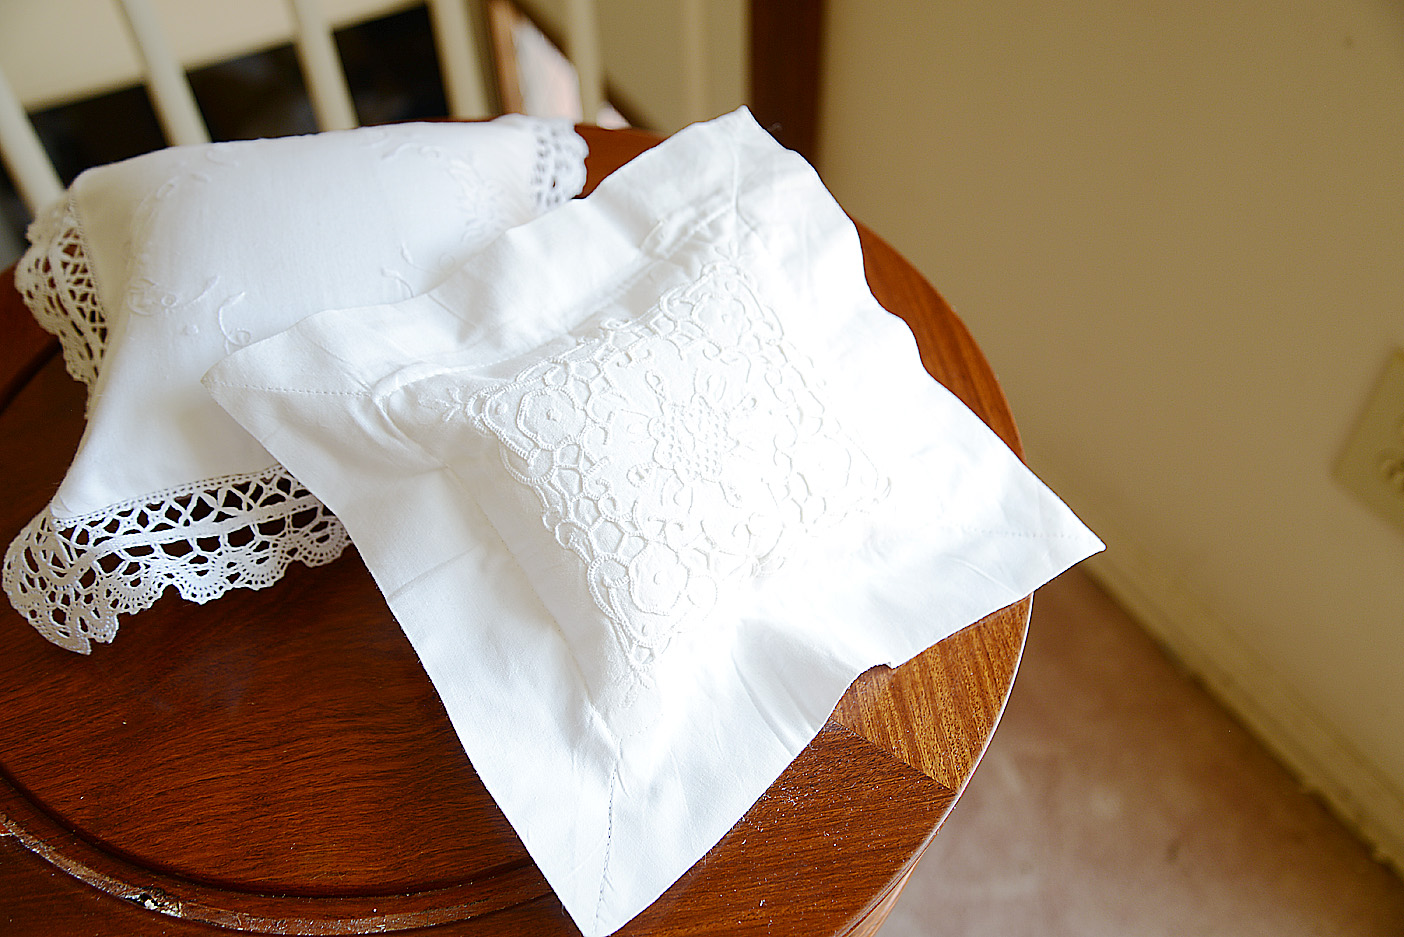 miniature baby pillows, 6 inches mini baby pillow